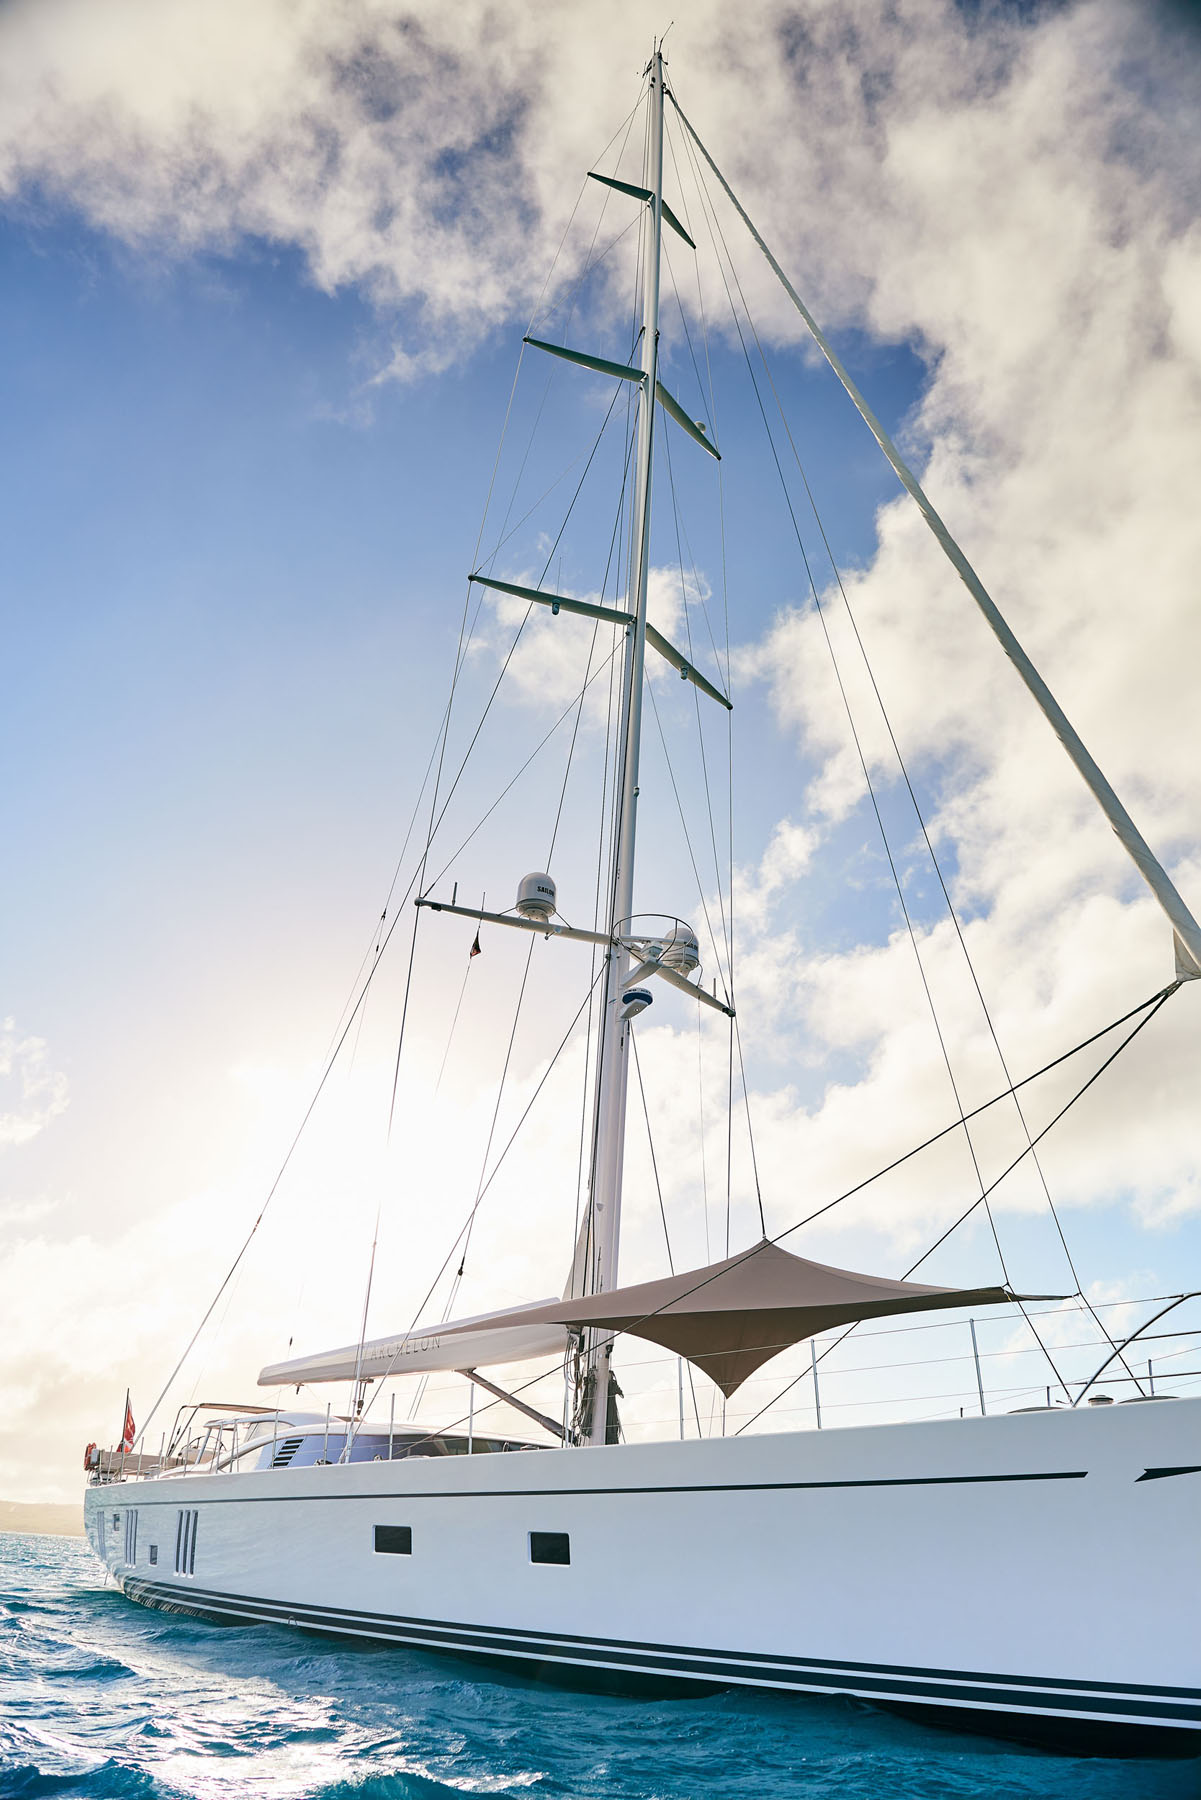 S/Y Archelon exterior shot showing the mast